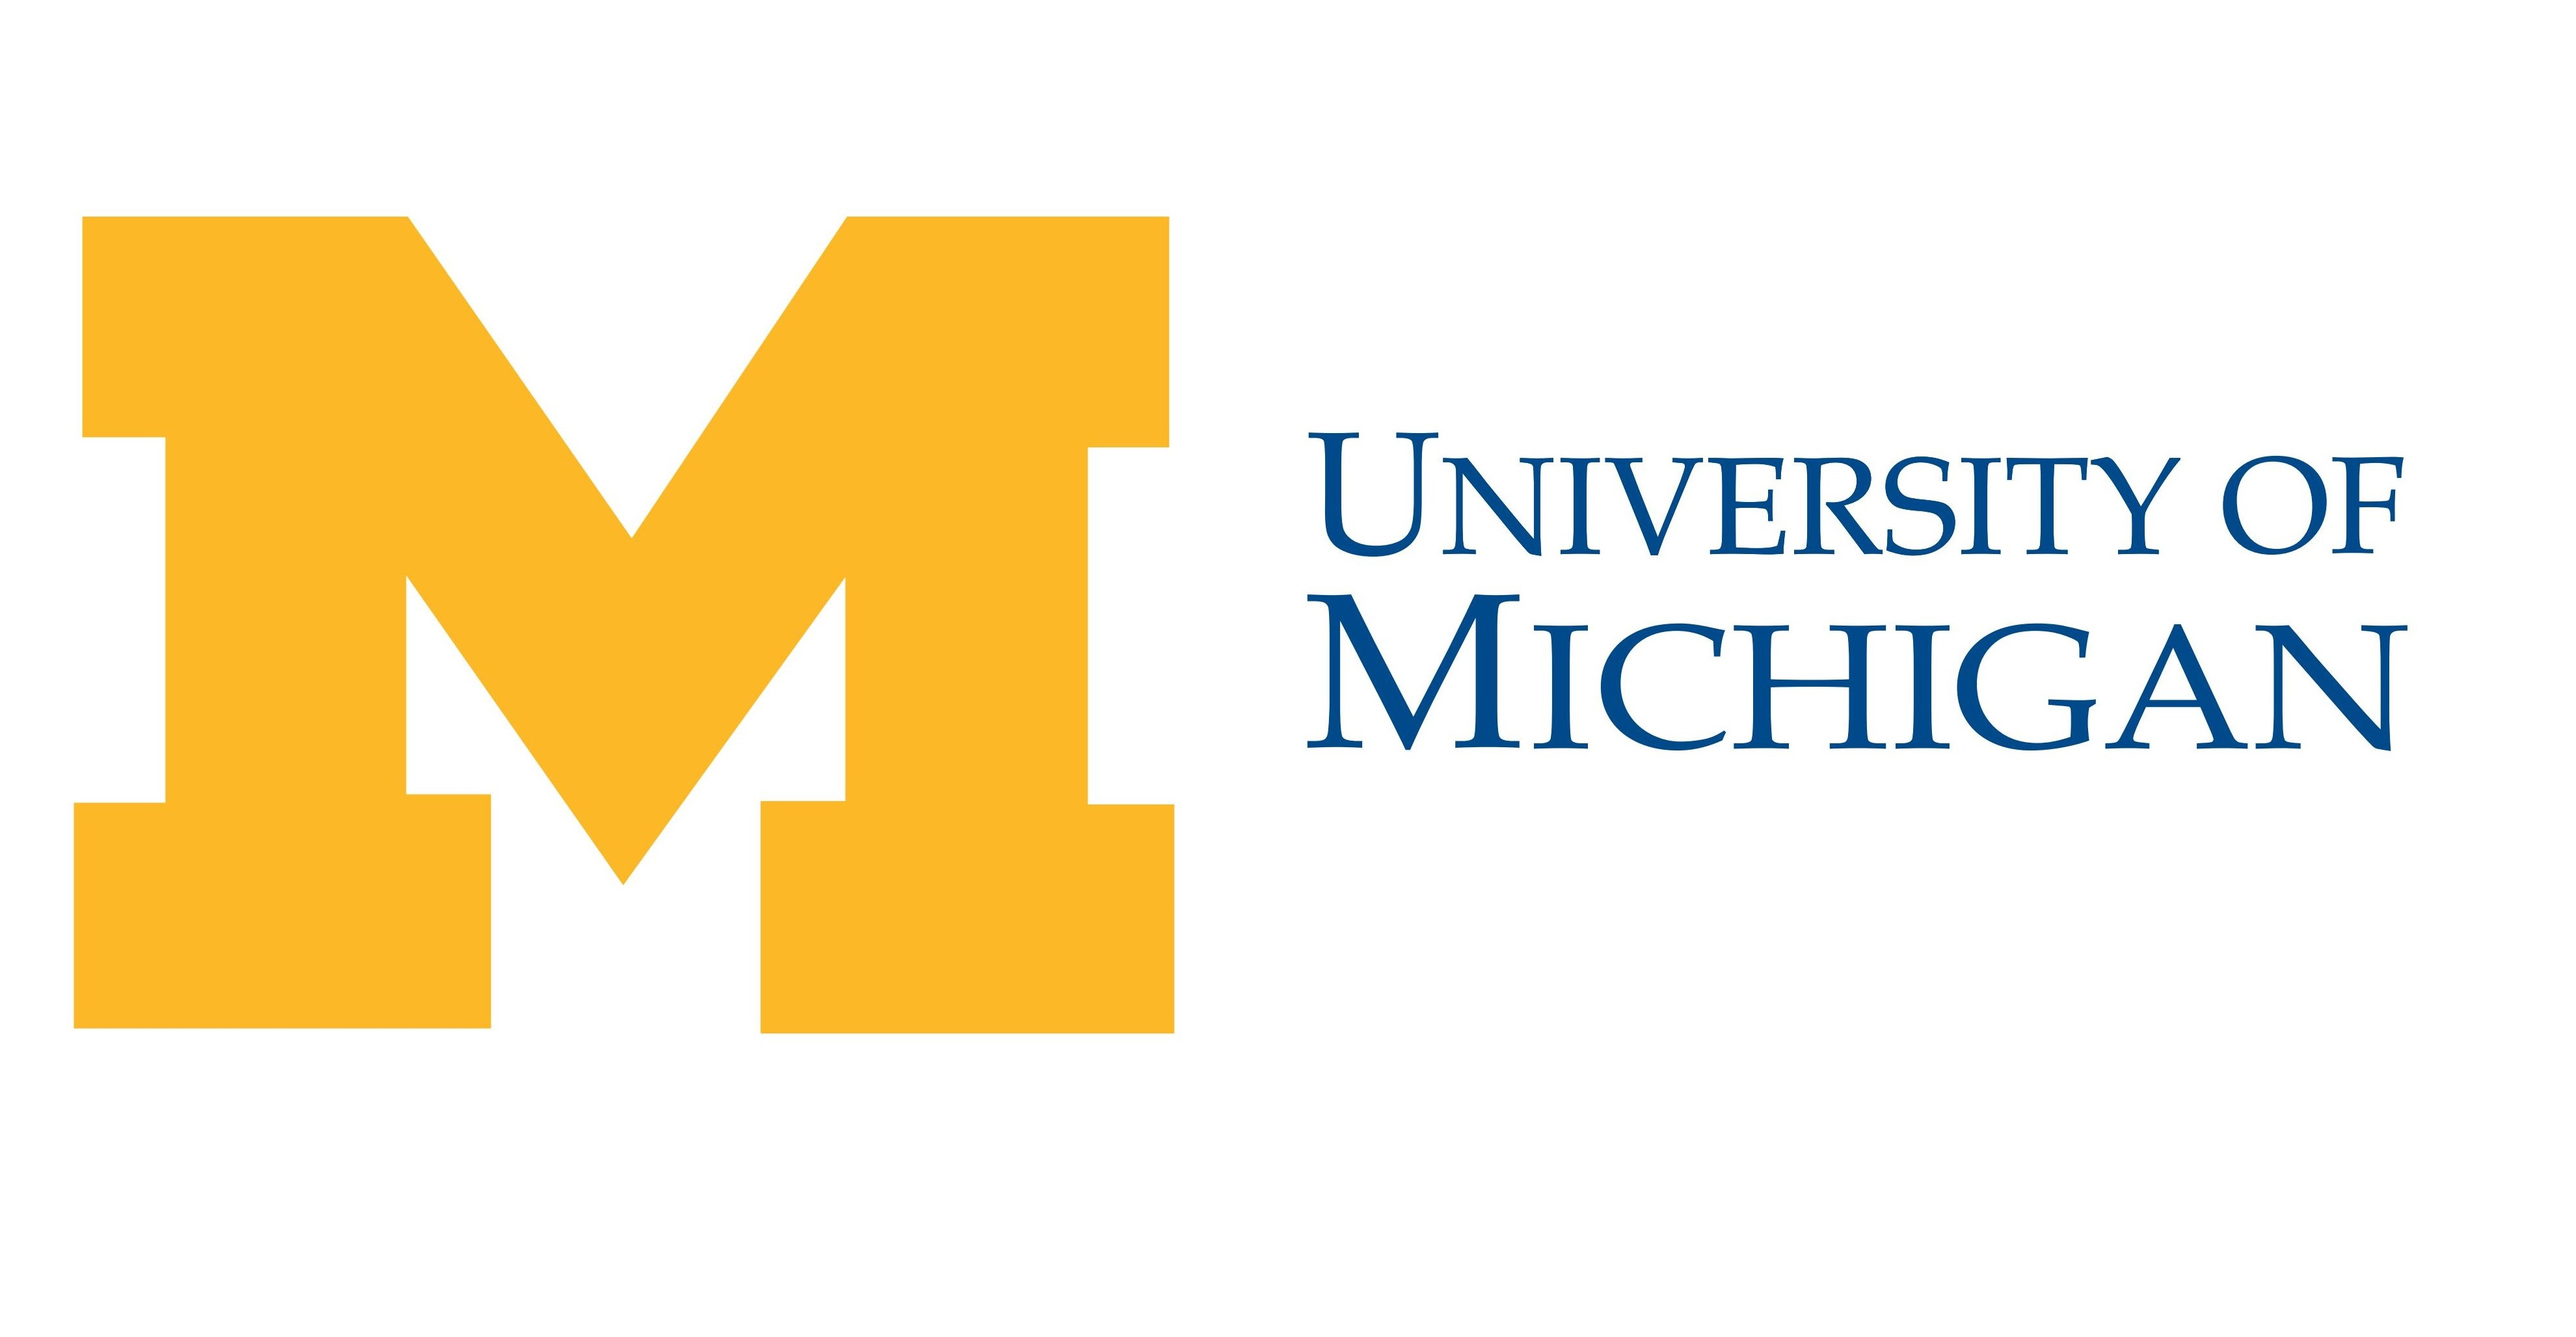 University of Michigan Master of Applied Data Science Online